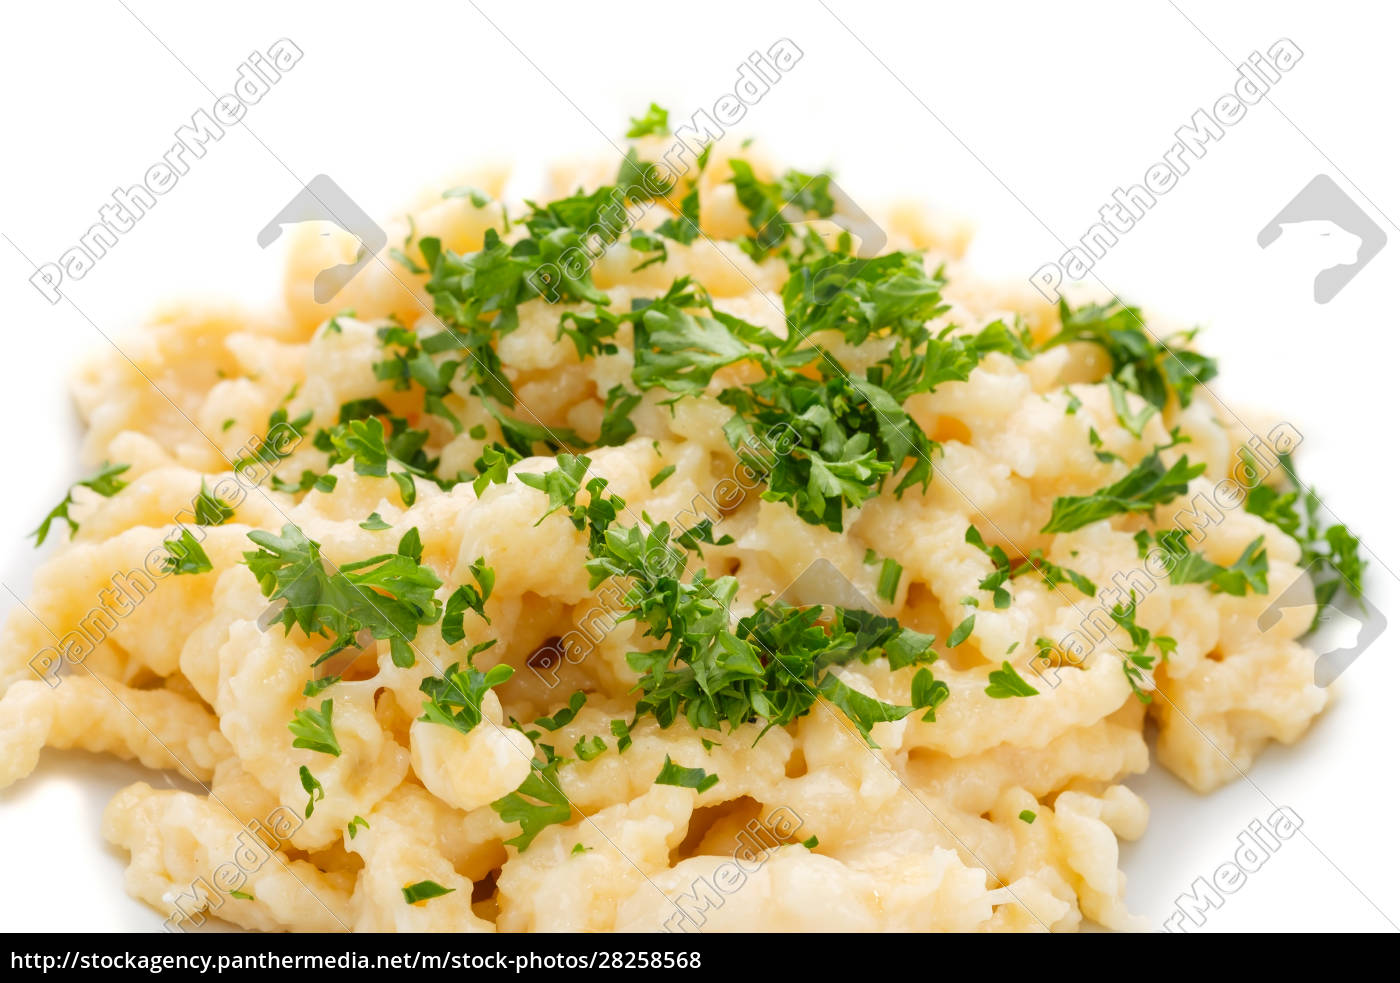 german, speciality, käsespätzle, cheese, noodles, with - 28258568